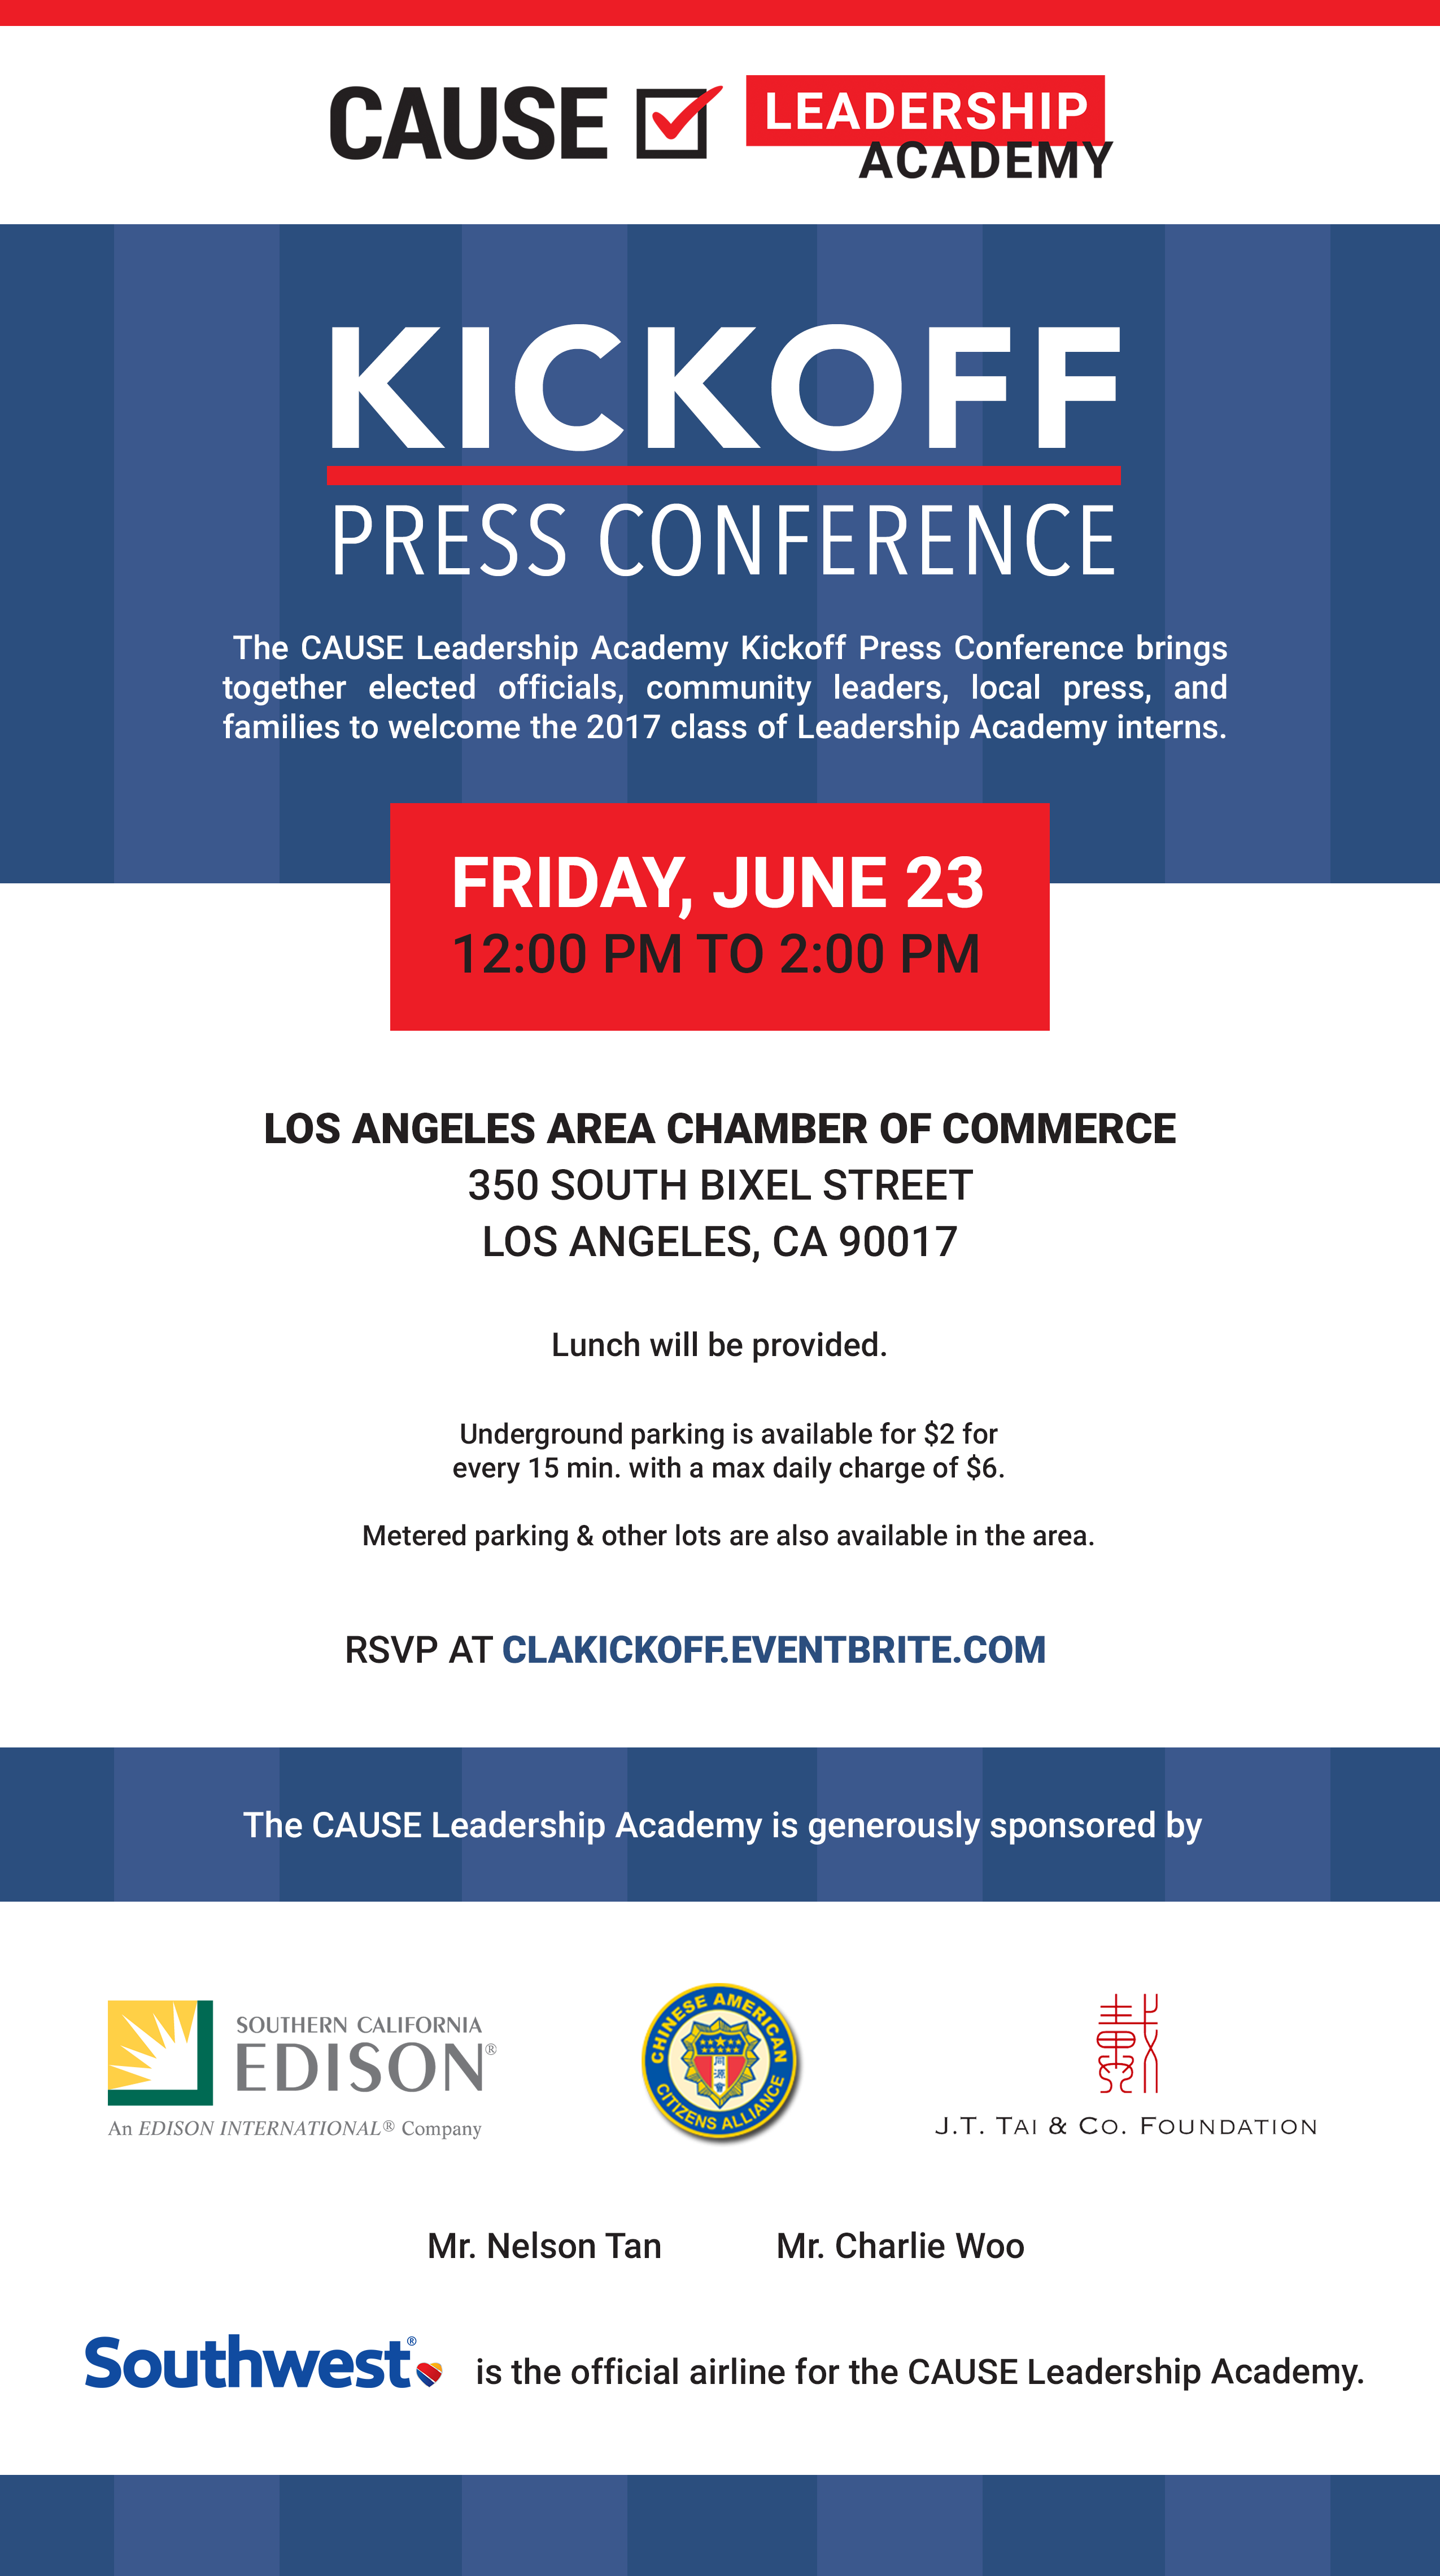 CAUSE Leadership Academy Kickoff Press Conference flyer